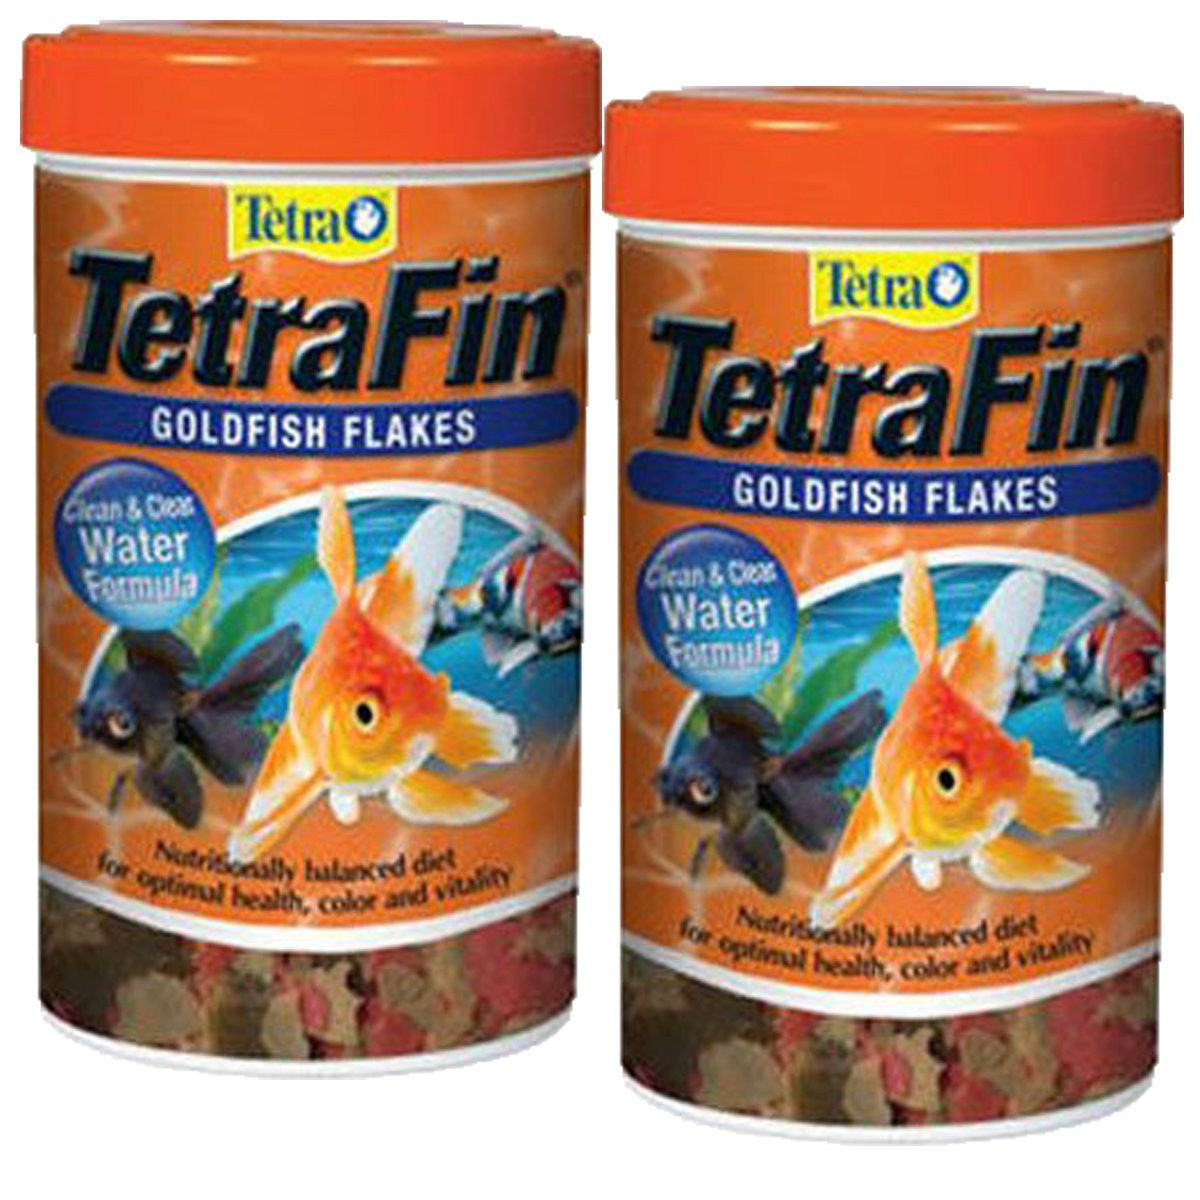 Tetra TetraFin Goldfish Flakes Food with ProCare, 4.4 oz